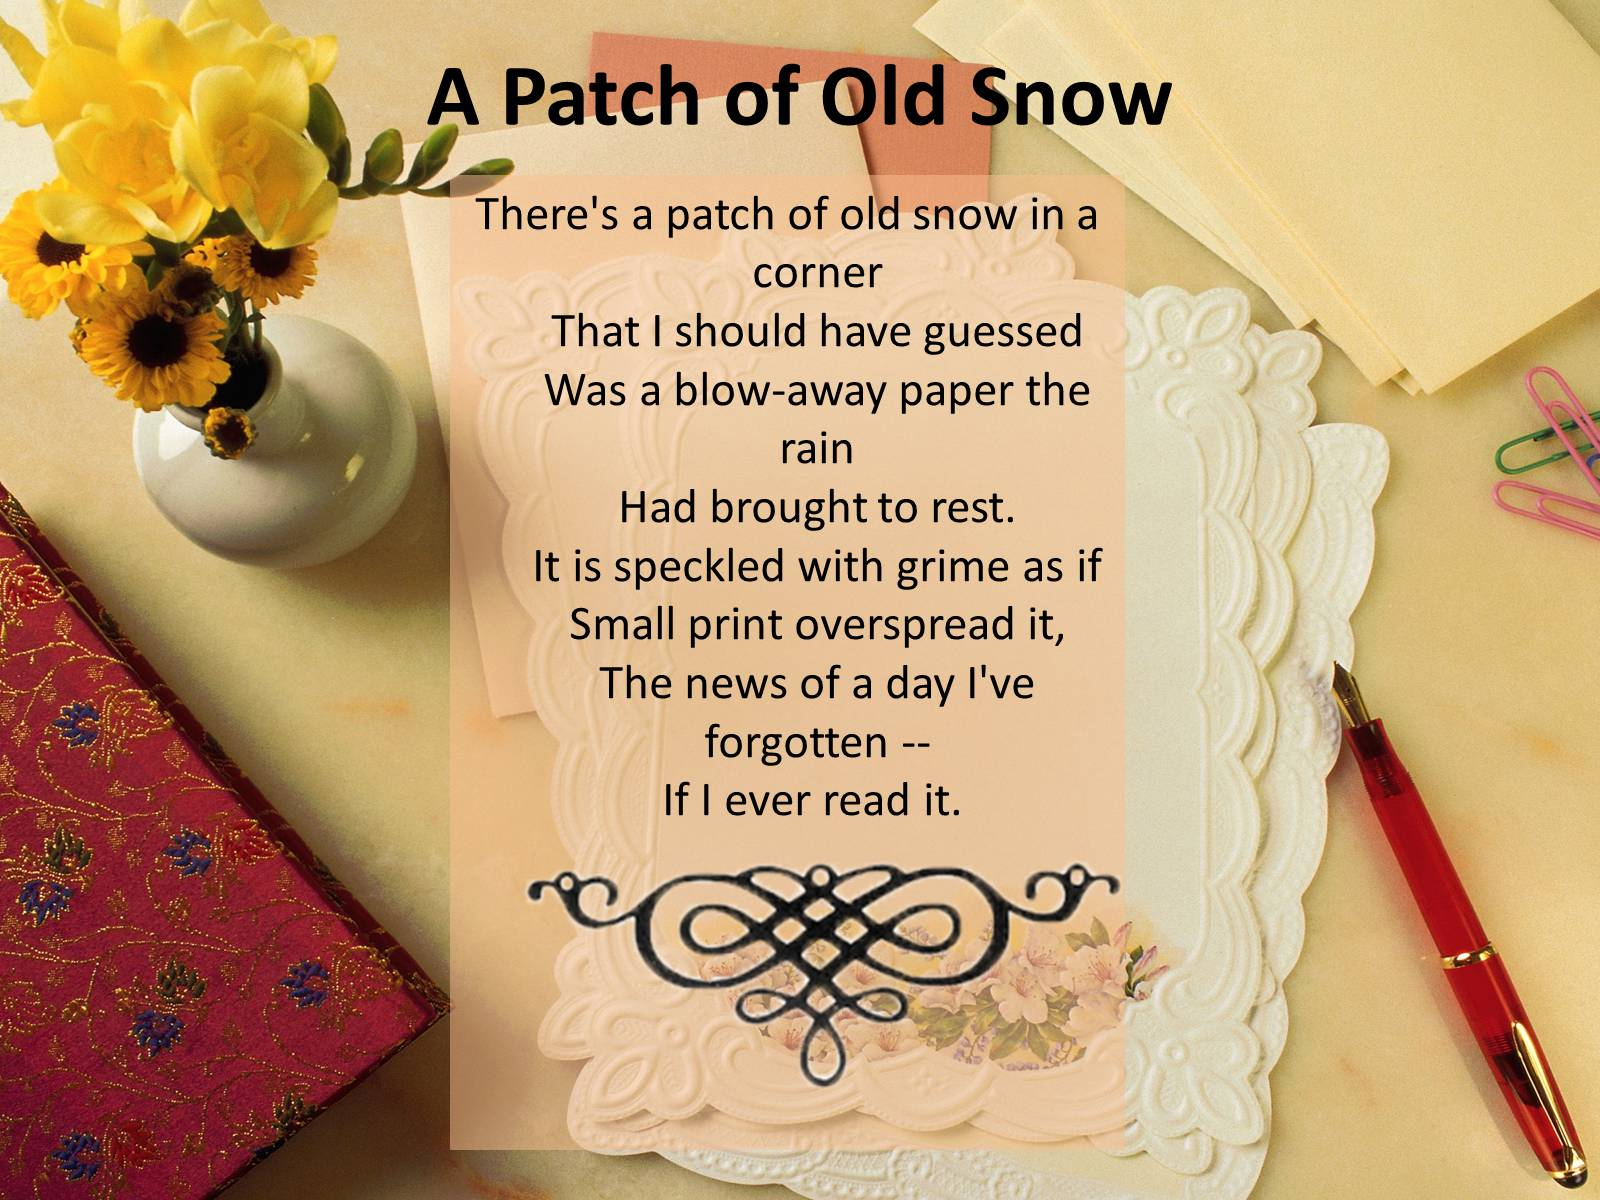 a patch of old snow